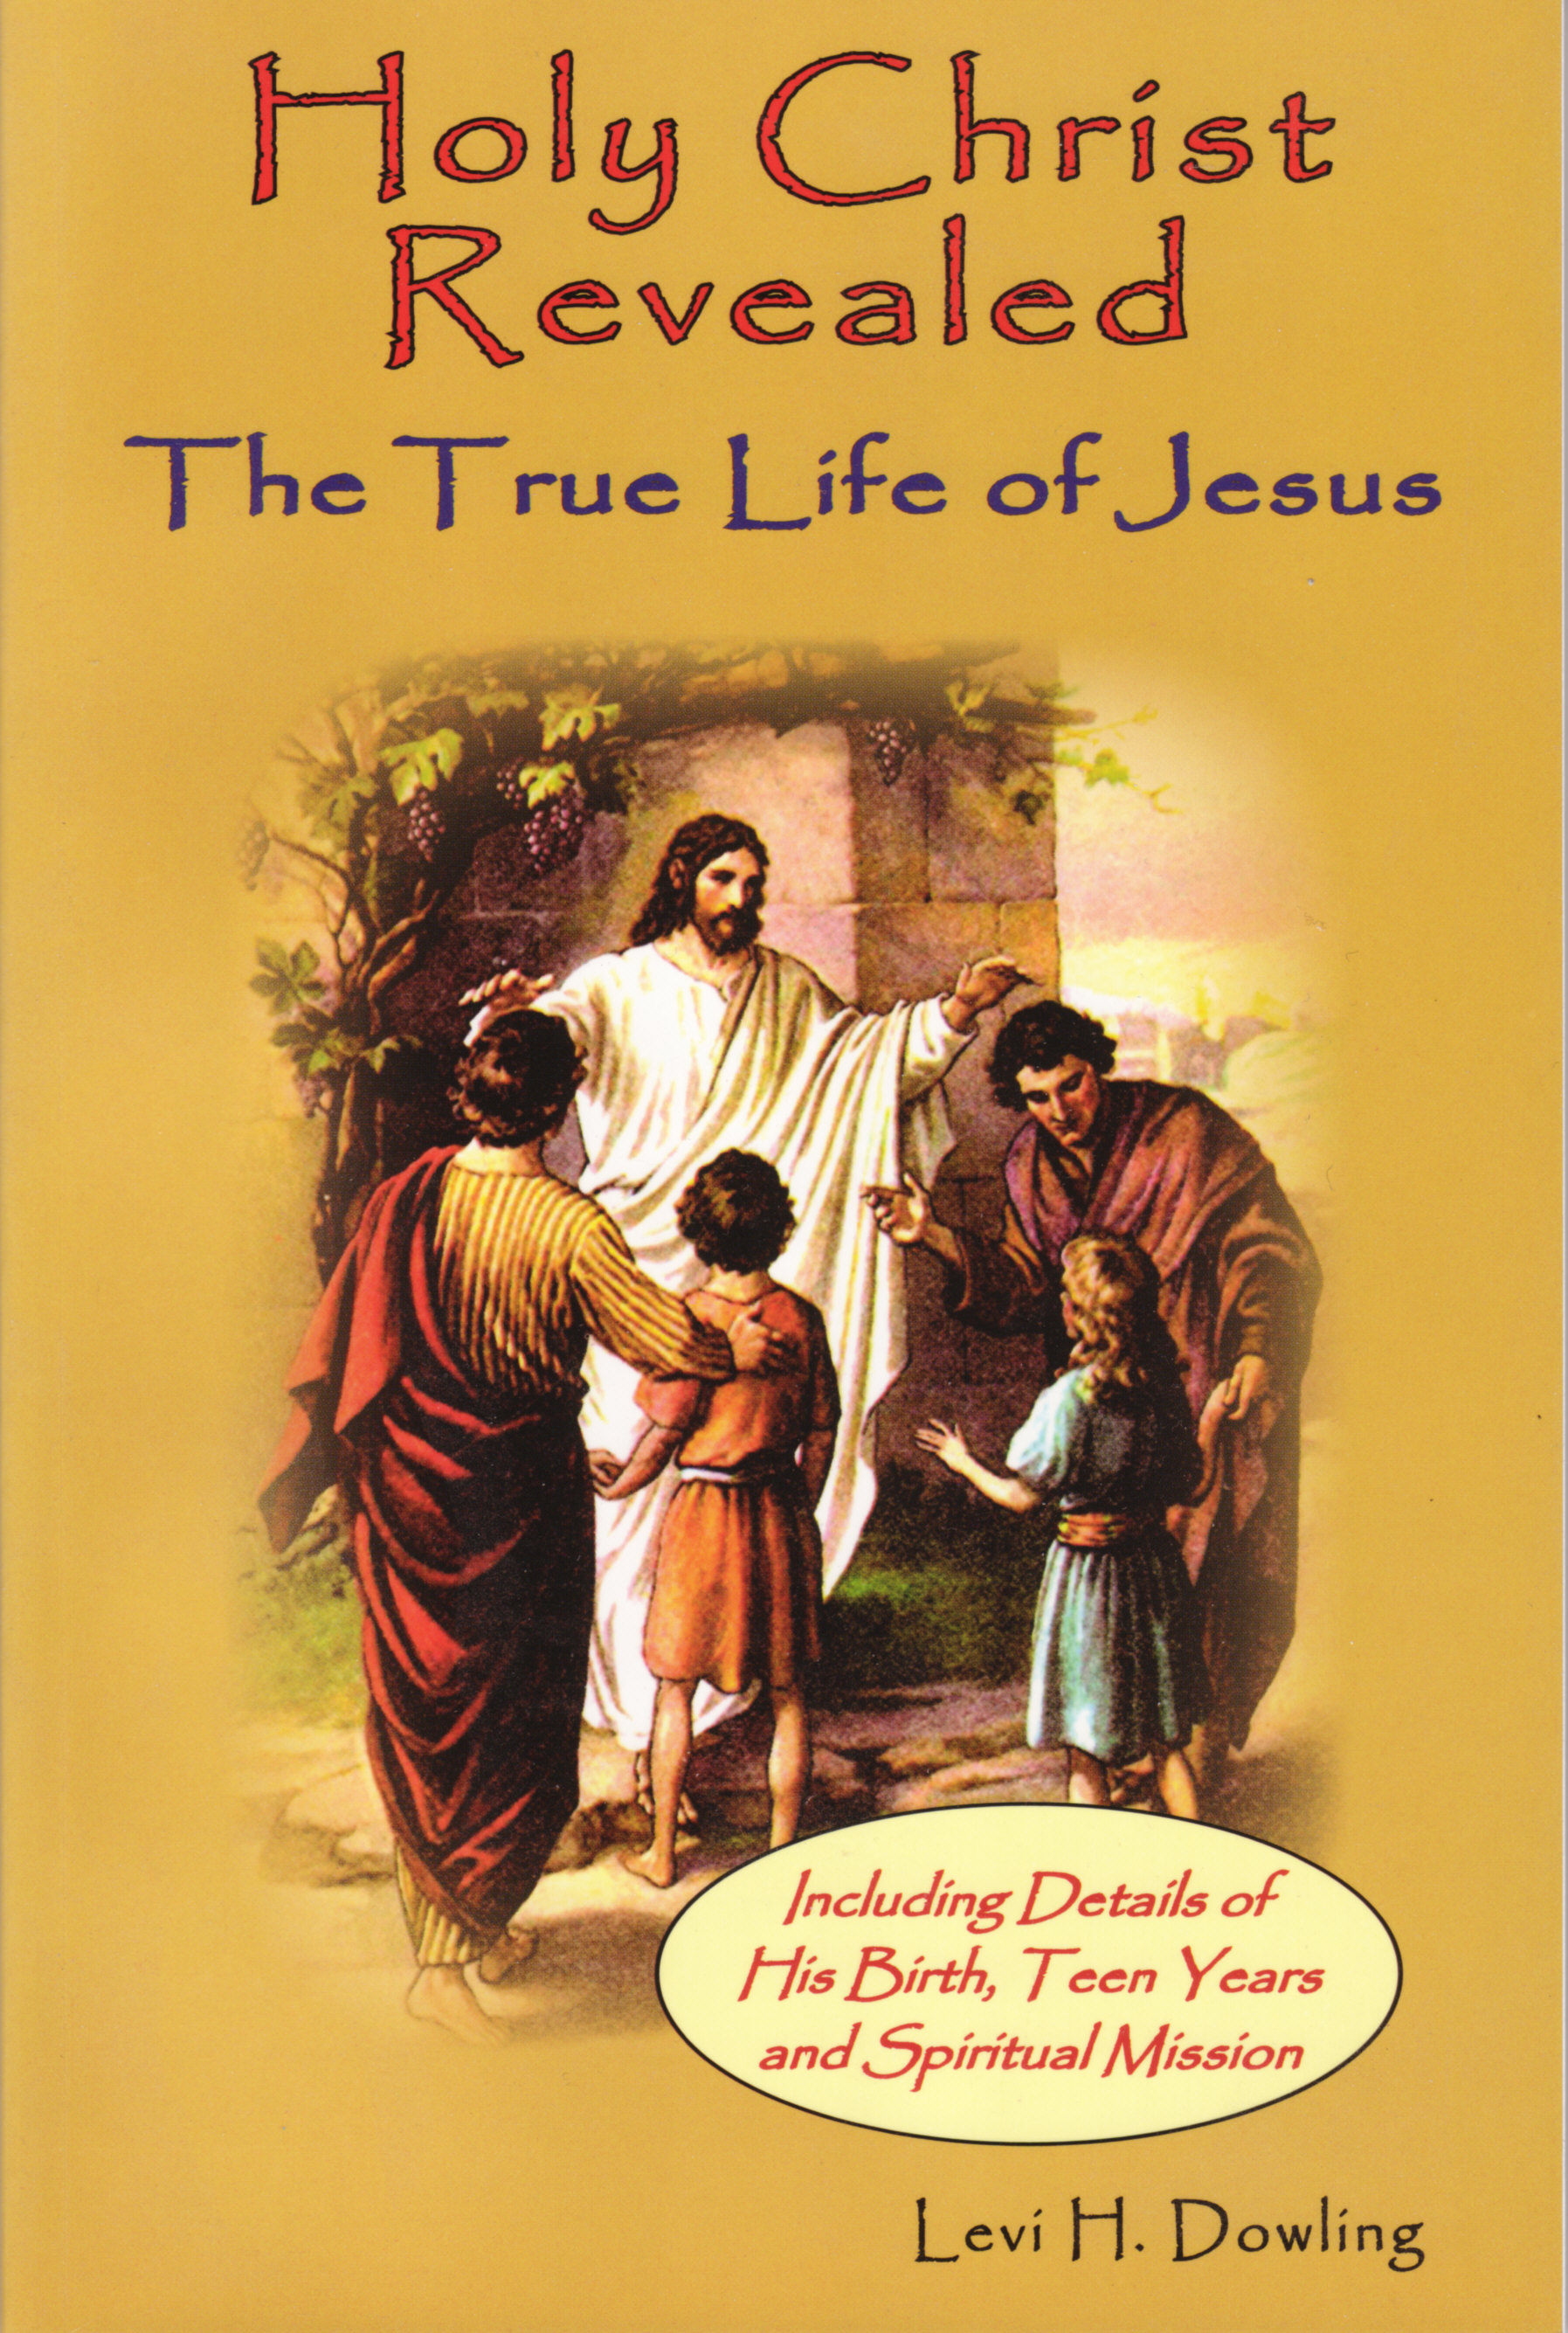 Holy Christ Revealed, the True Life of Jesus